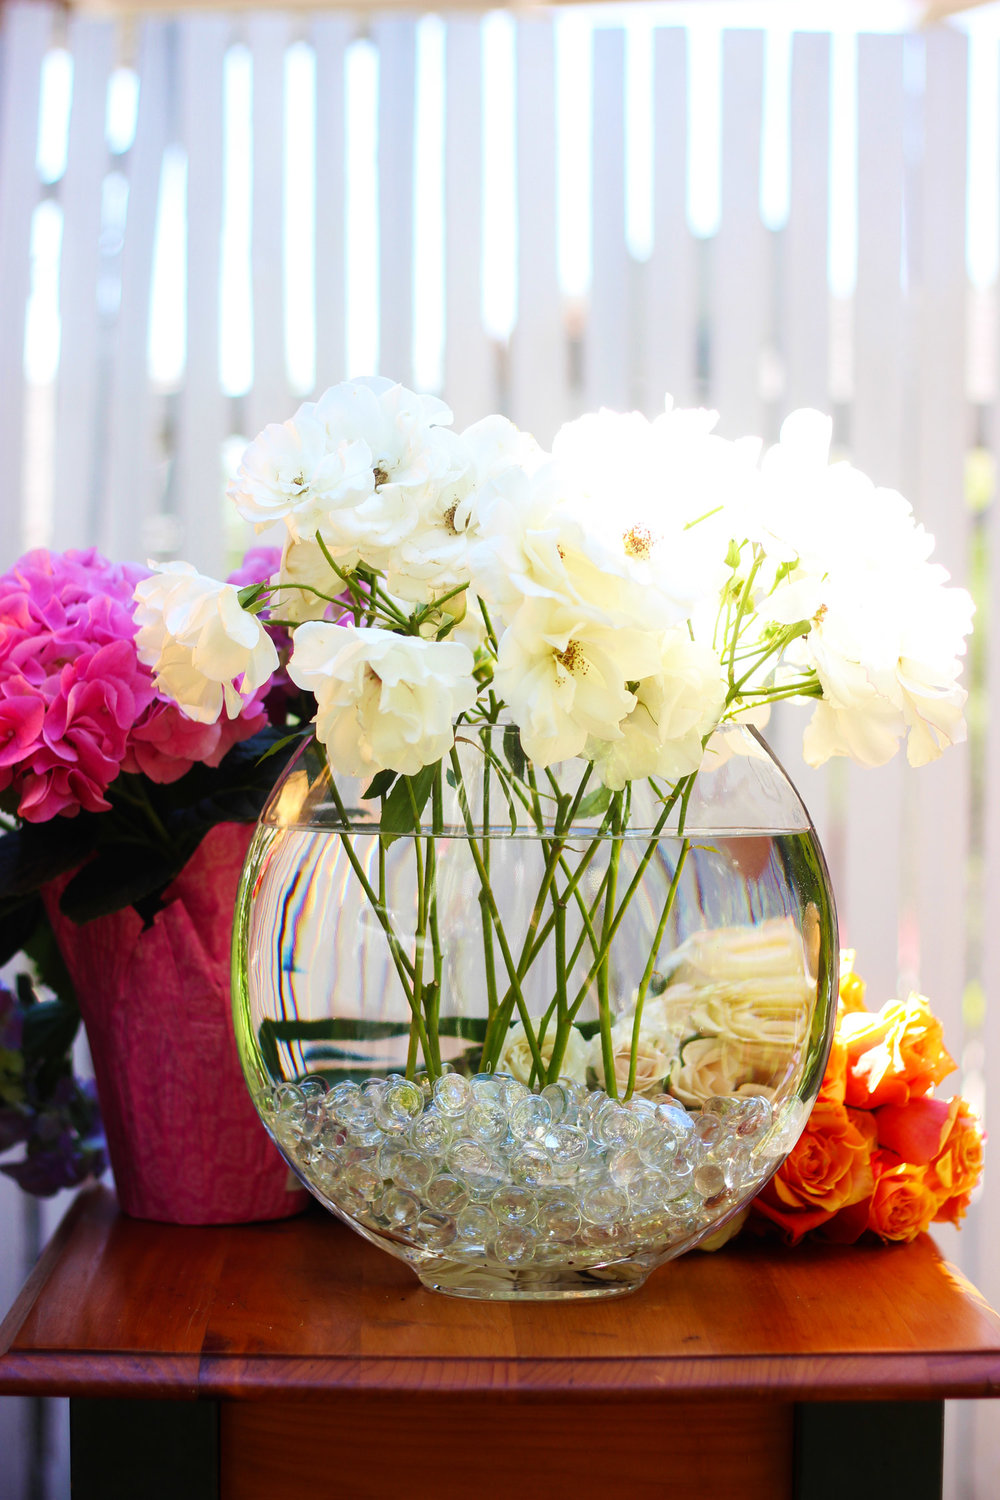 Start by placing Iceberg Roses in vase with stems straight down.